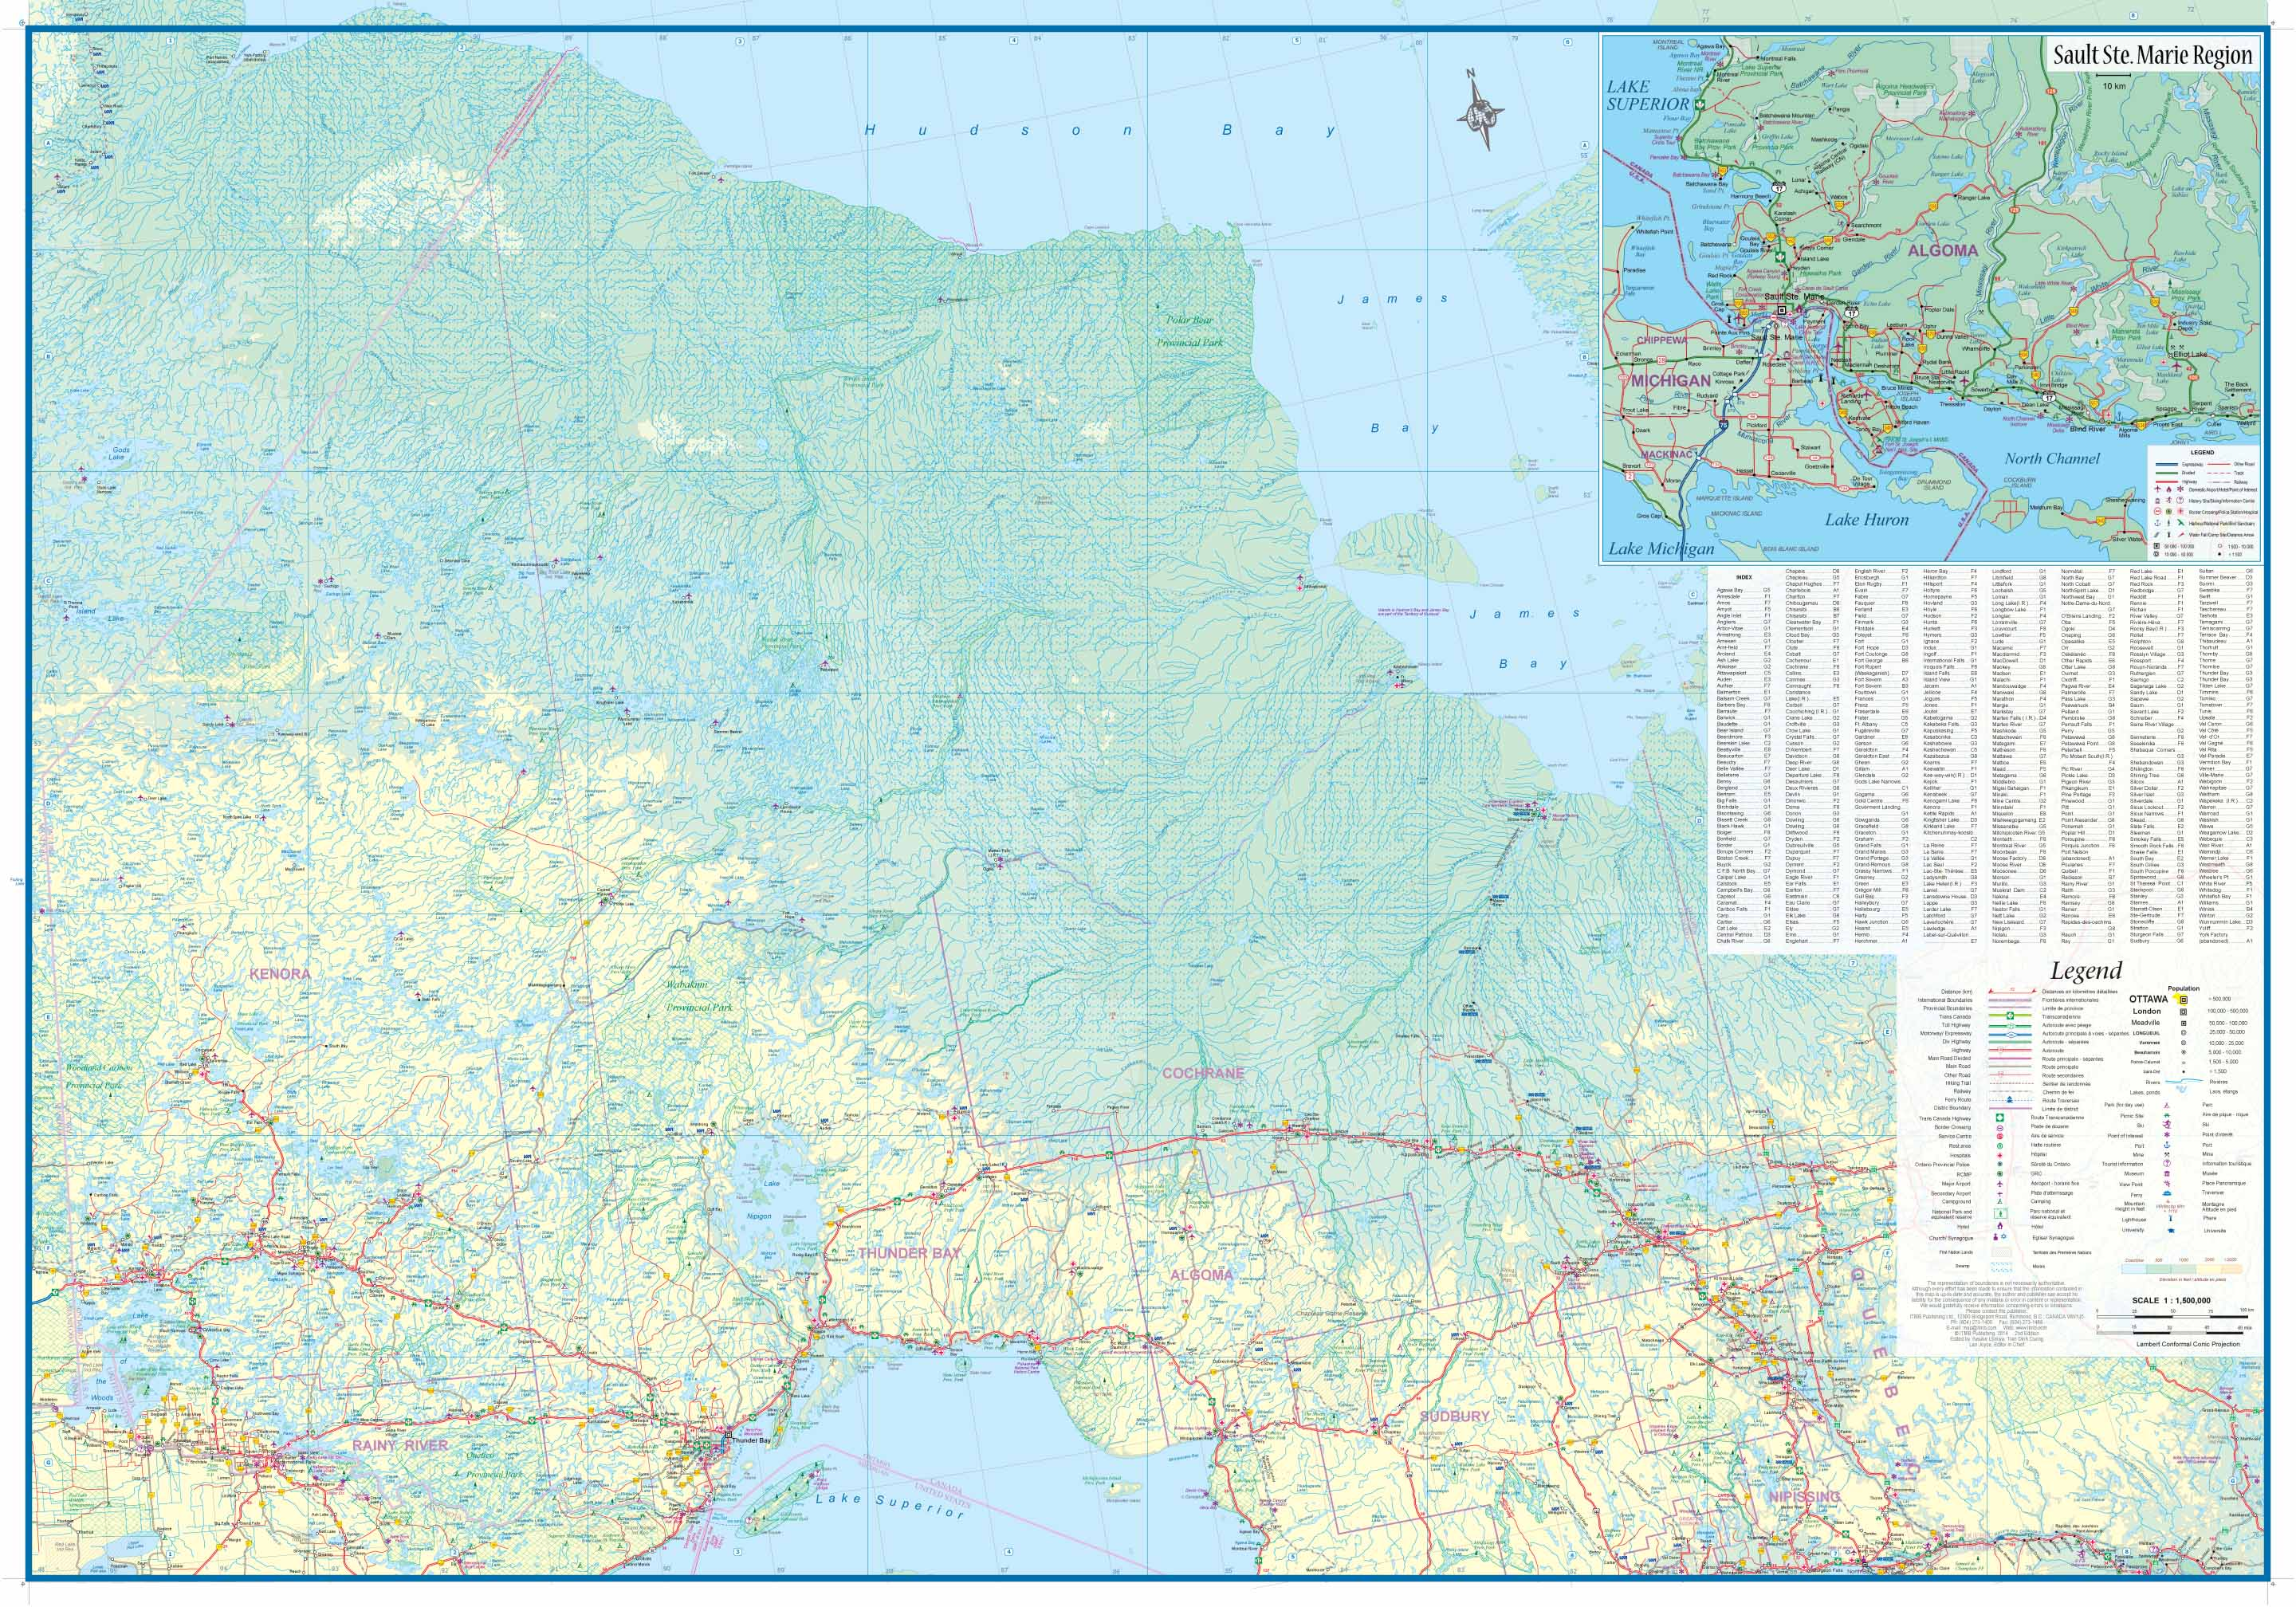 Ontario Topographic Map.Maps For Travel City Maps Road Maps Guides Globes Topographic Maps